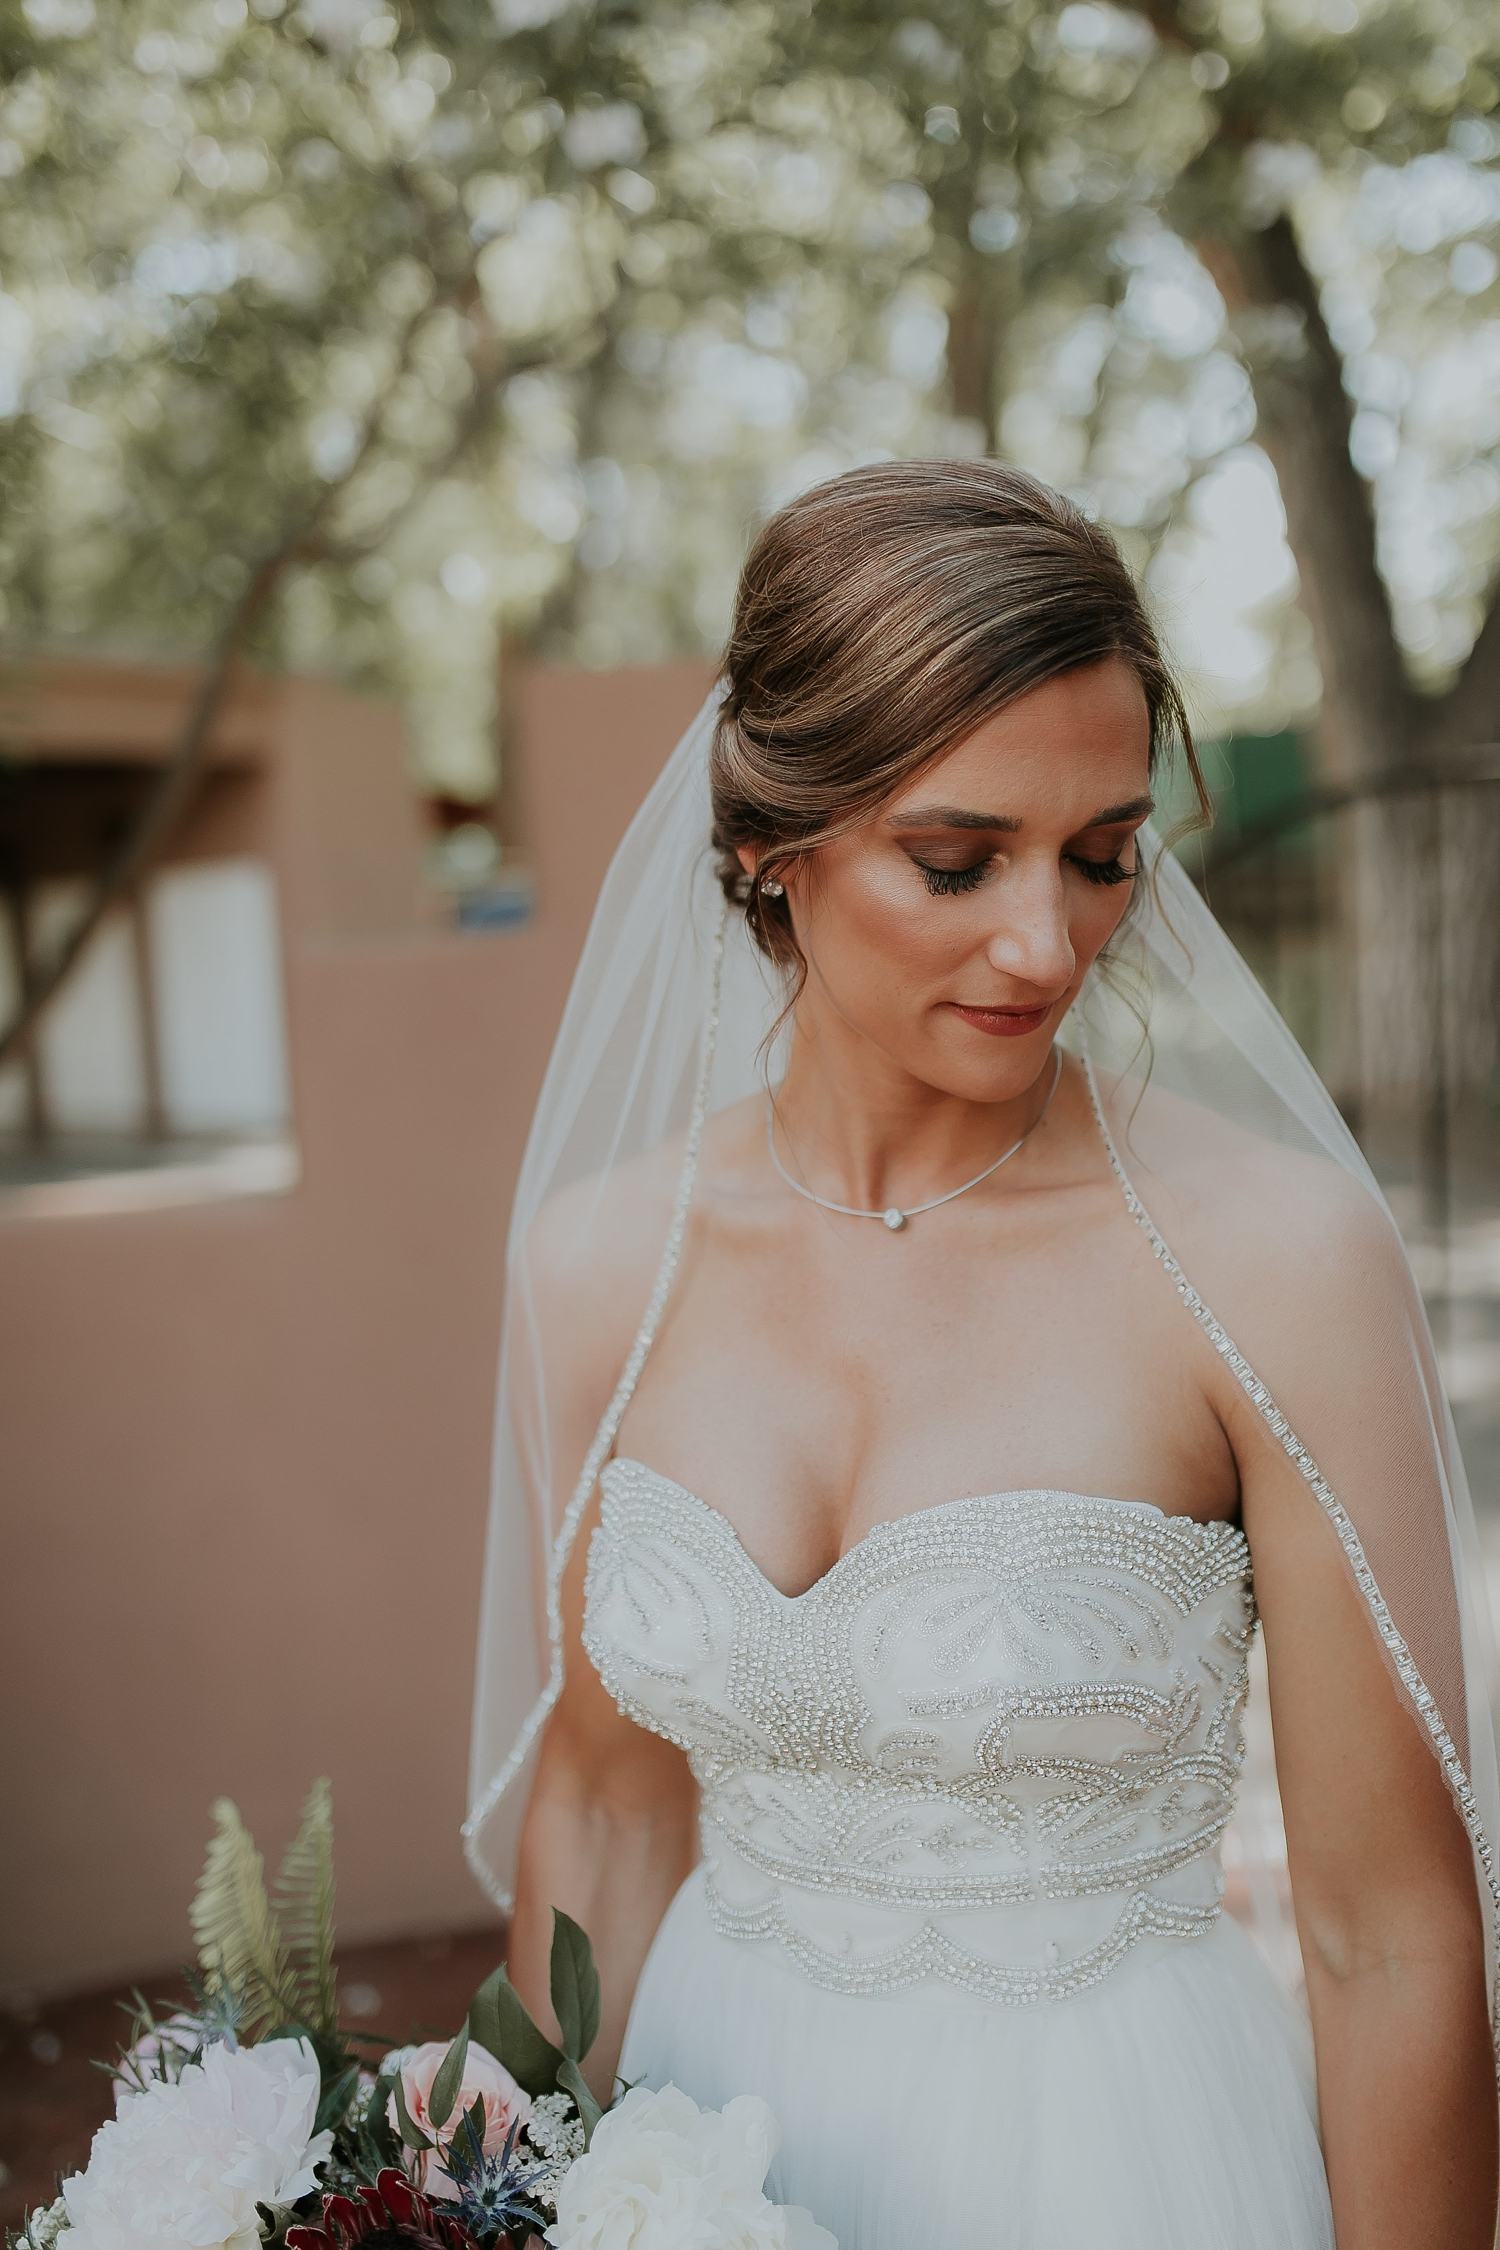 Alicia+lucia+photography+-+albuquerque+wedding+photographer+-+santa+fe+wedding+photography+-+new+mexico+wedding+photographer+-+summer+wedding+gowns+-+summer+wedding+style_0051.jpg